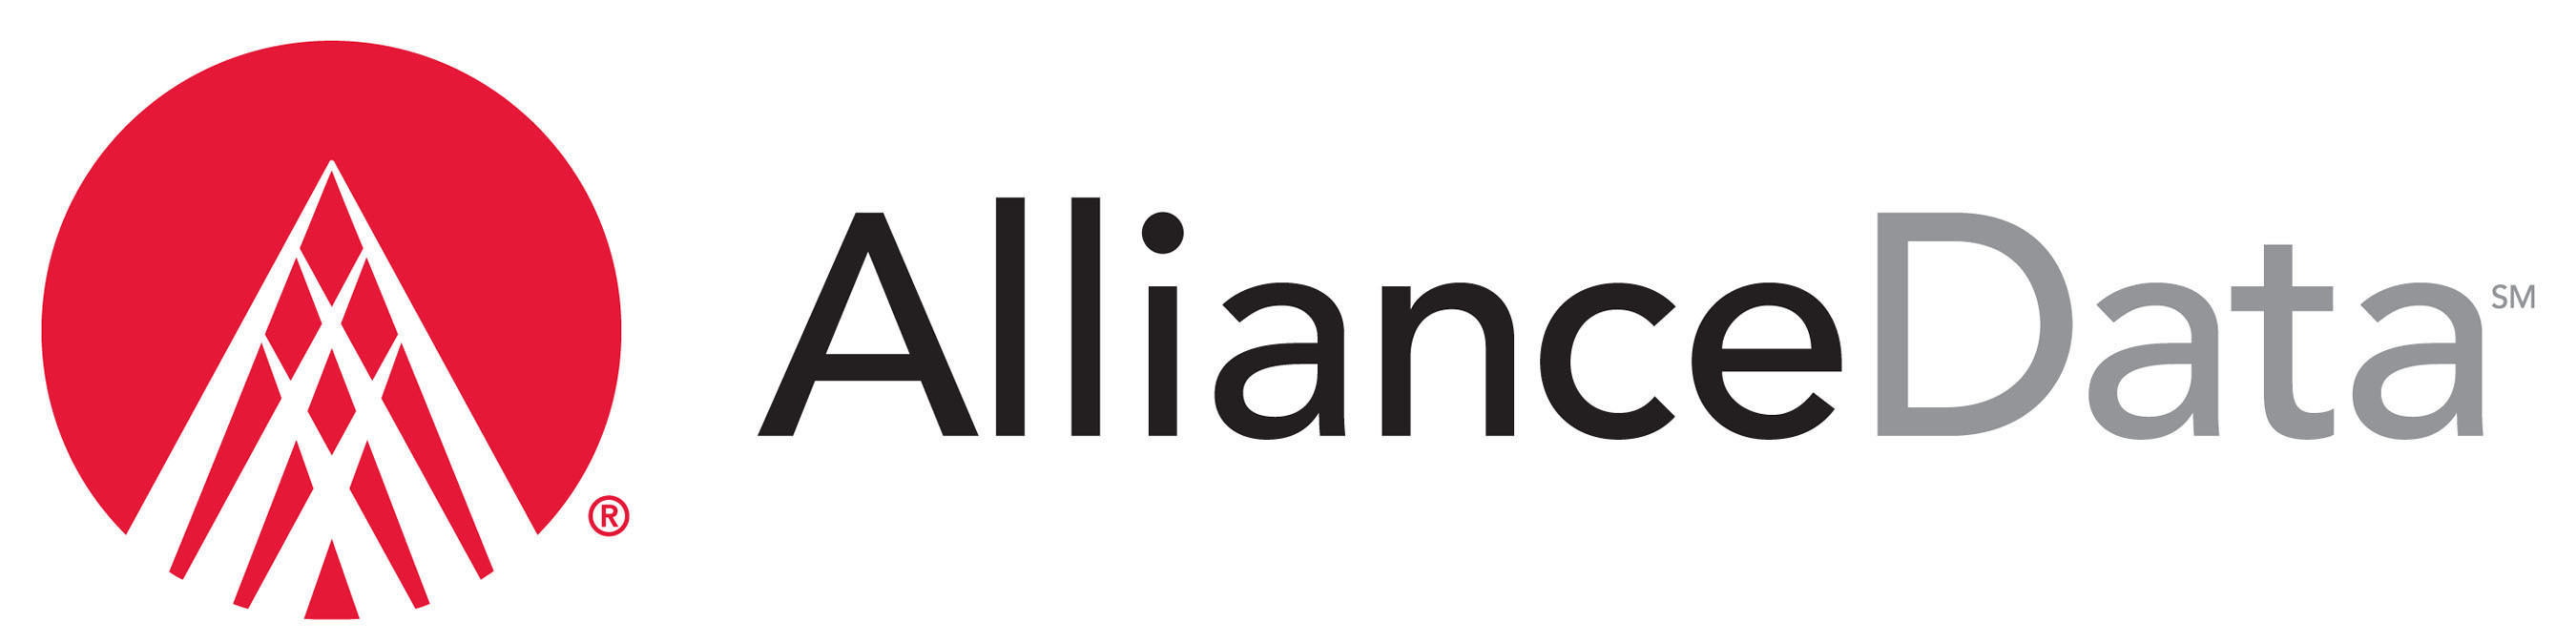 Alliance Data S Card Services Business Signs New Agreement To Manage